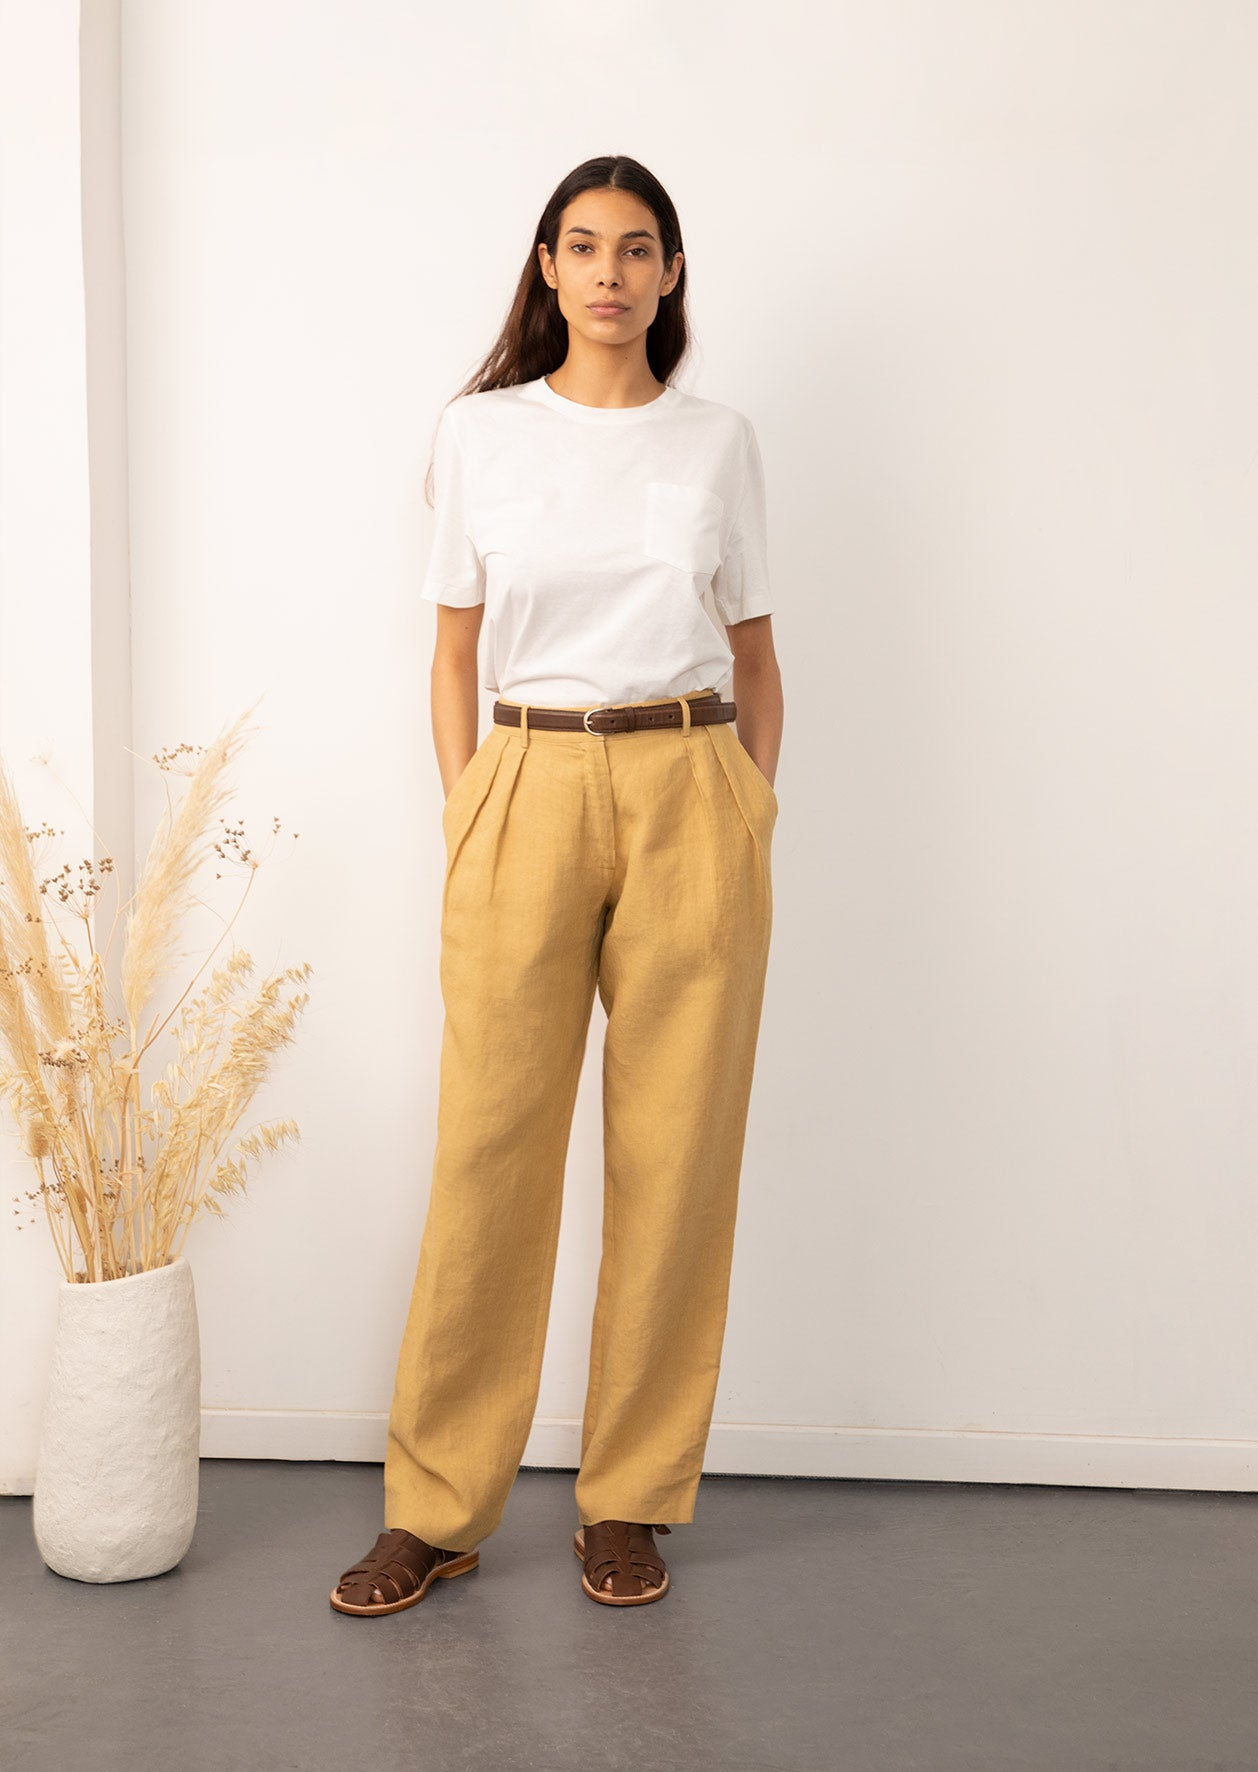 De Bonne Facture - two pleat large trousers - Belgian washed linen - Straw